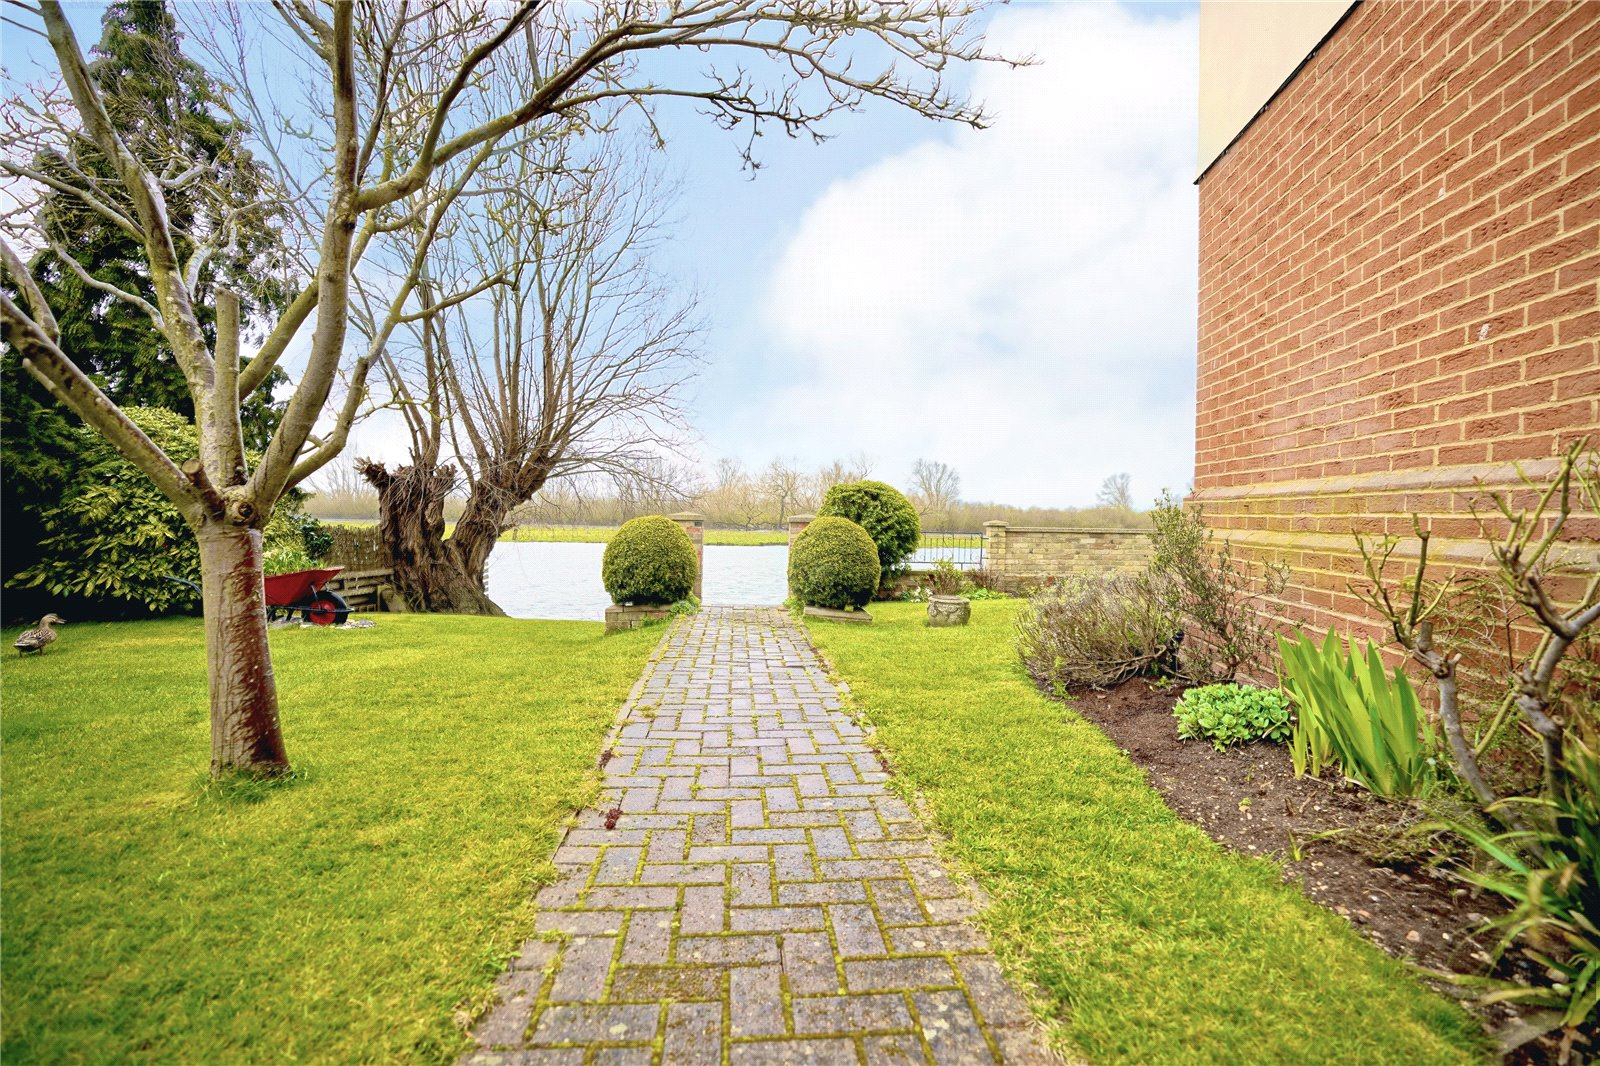 2 bed apartment for sale in Earith, PE28 3PP  - Property Image 12